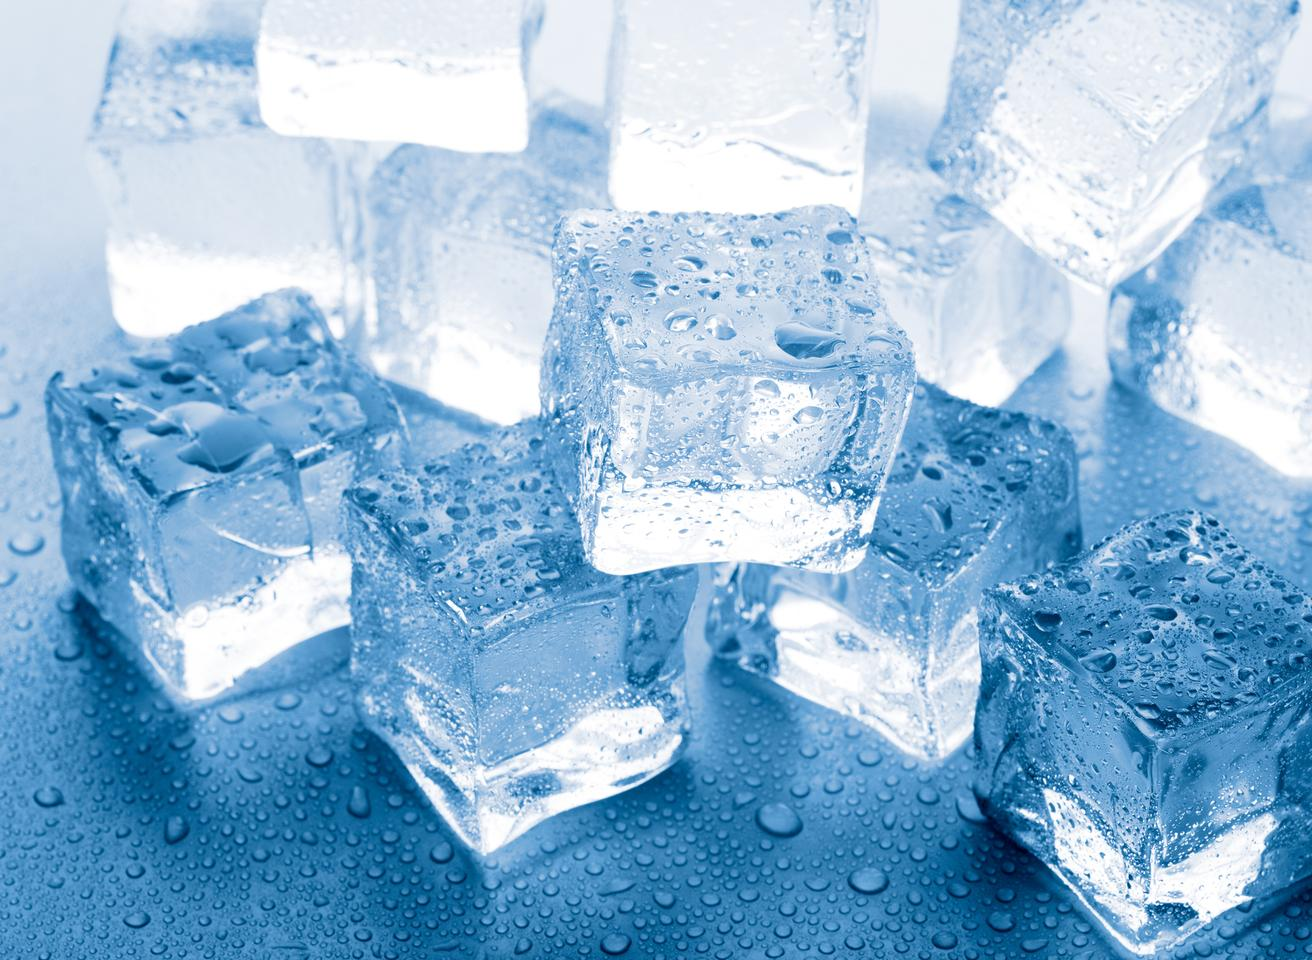 Researchers have confirmed the crystal structure of a new form of ice, adding to a growing list of known ice types